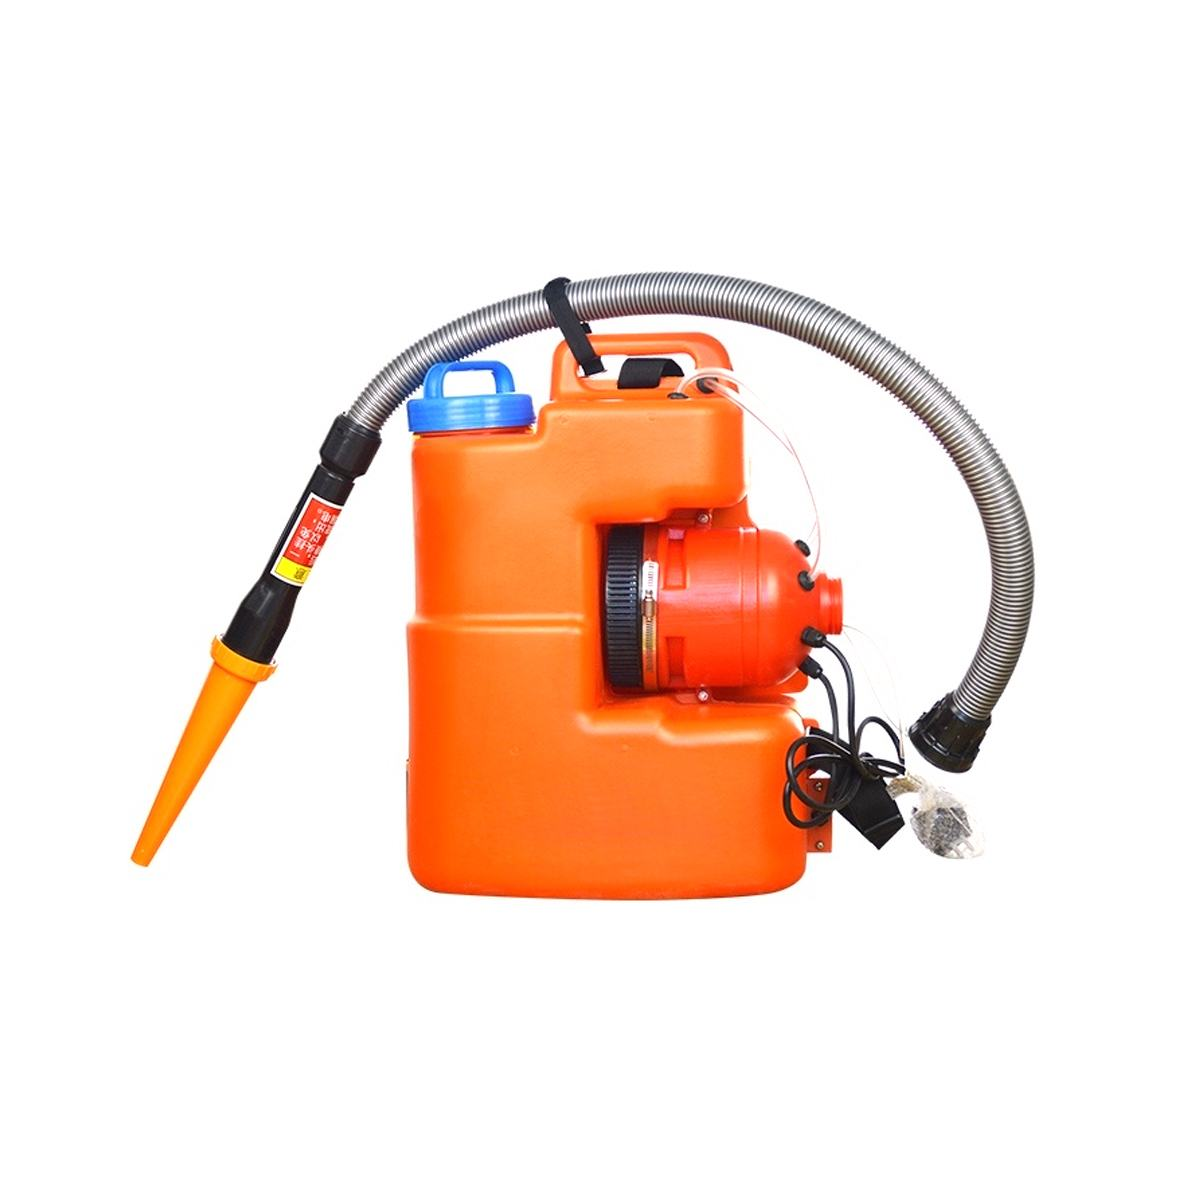 110V / 220V 2200W 20L Electric Fogger ULV Ultra Capacity Sprayer Mosquito Killer Fight Drugs Disinfection First Aid Kits Camping